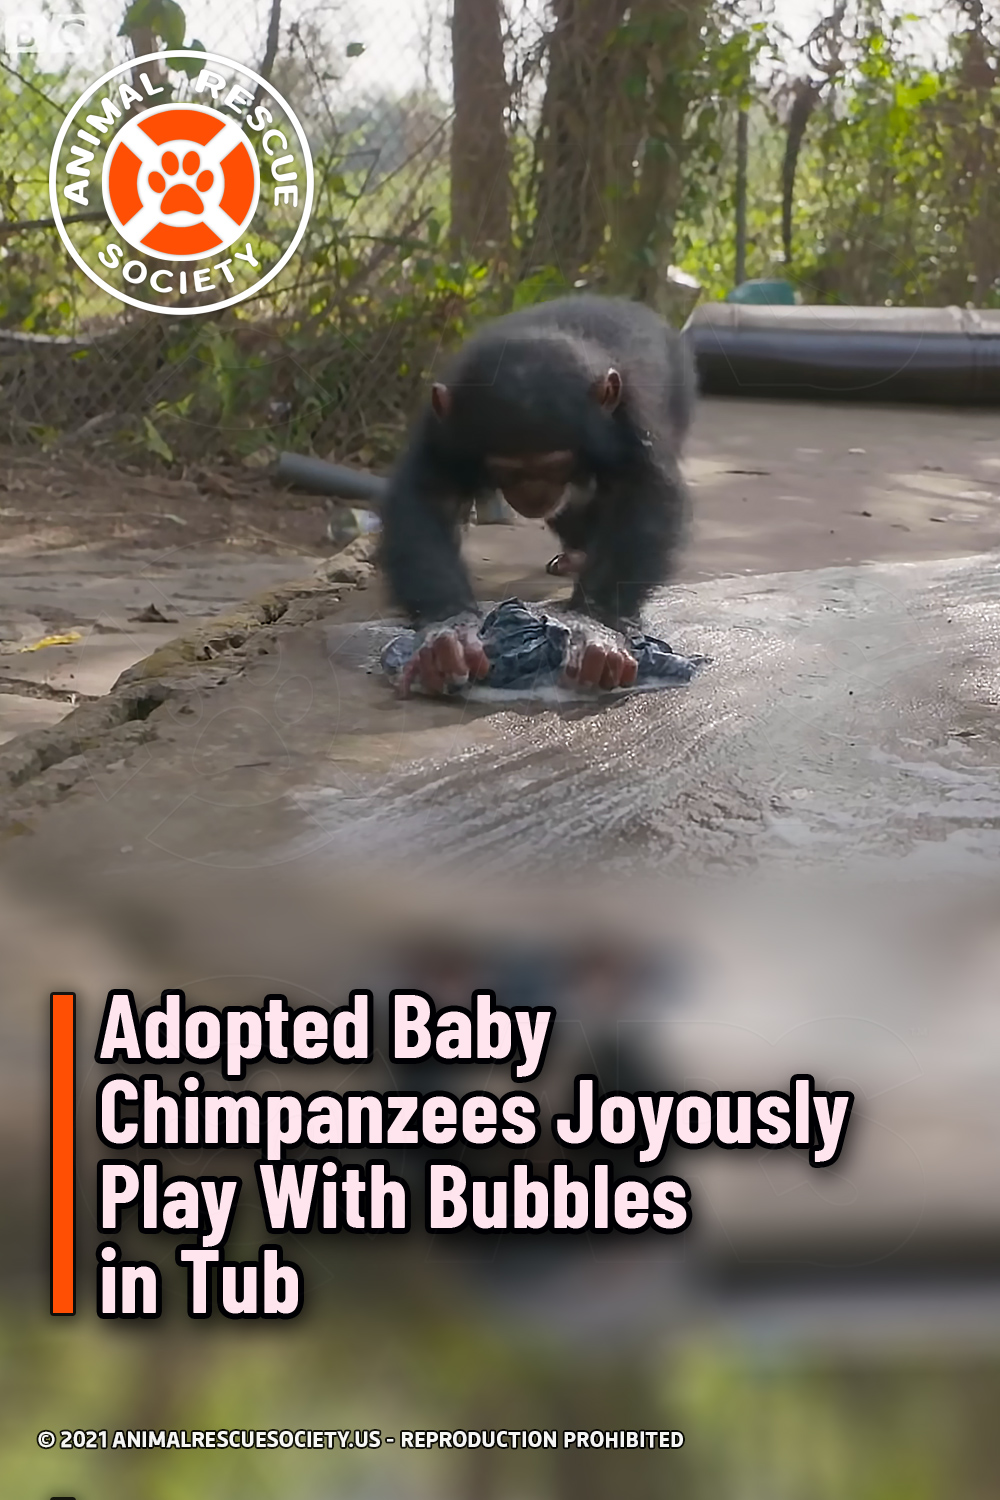 Adopted Baby Chimpanzees Joyously Play With Bubbles in Tub